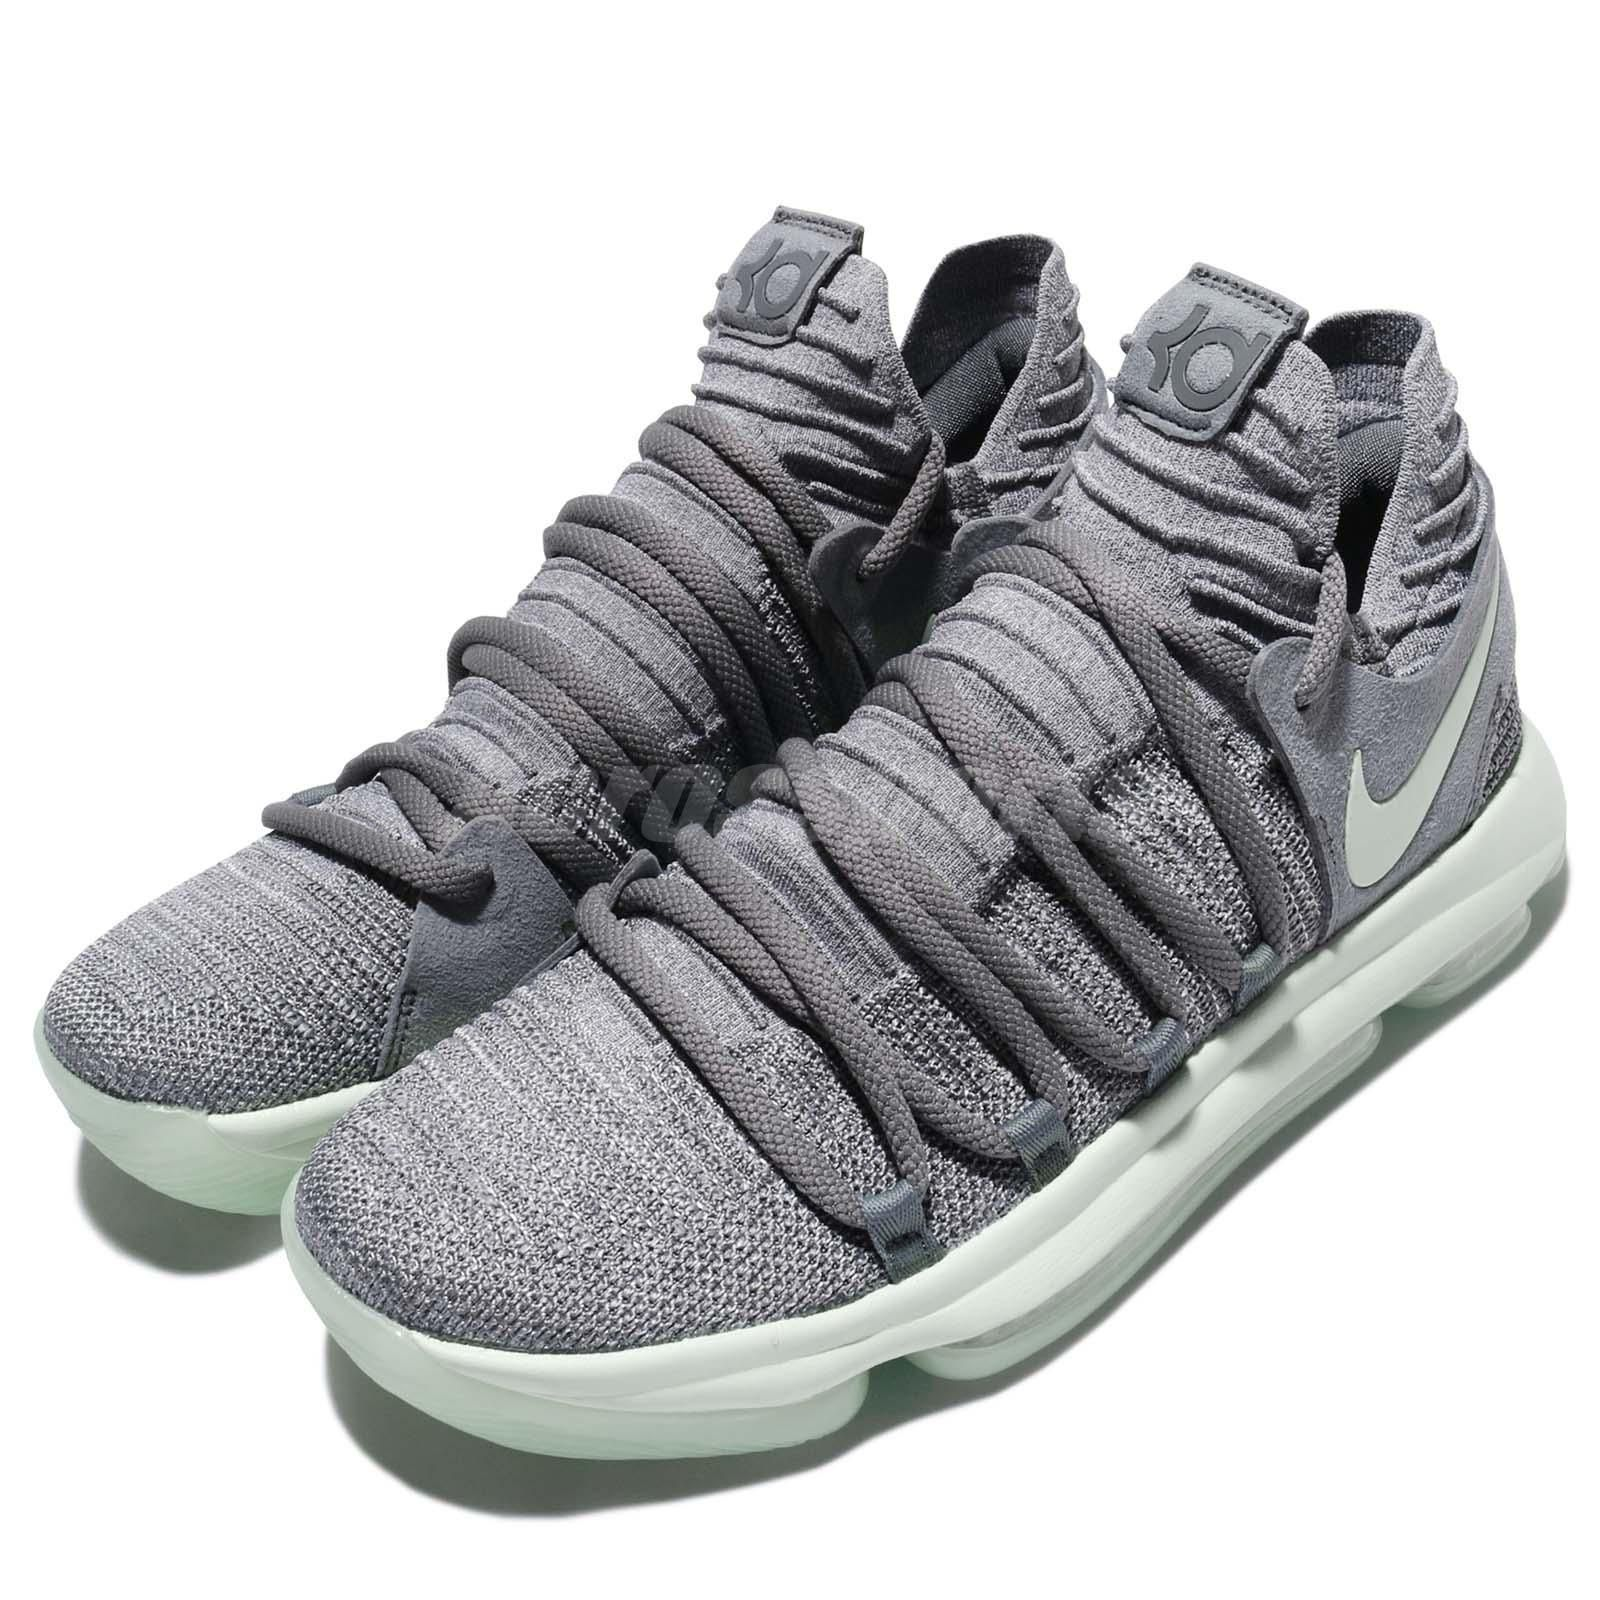 179021cce8a Nike Zoom KD 10 EP X Kevin Durant Cool Grey Igloo Men Basketball 897816-002